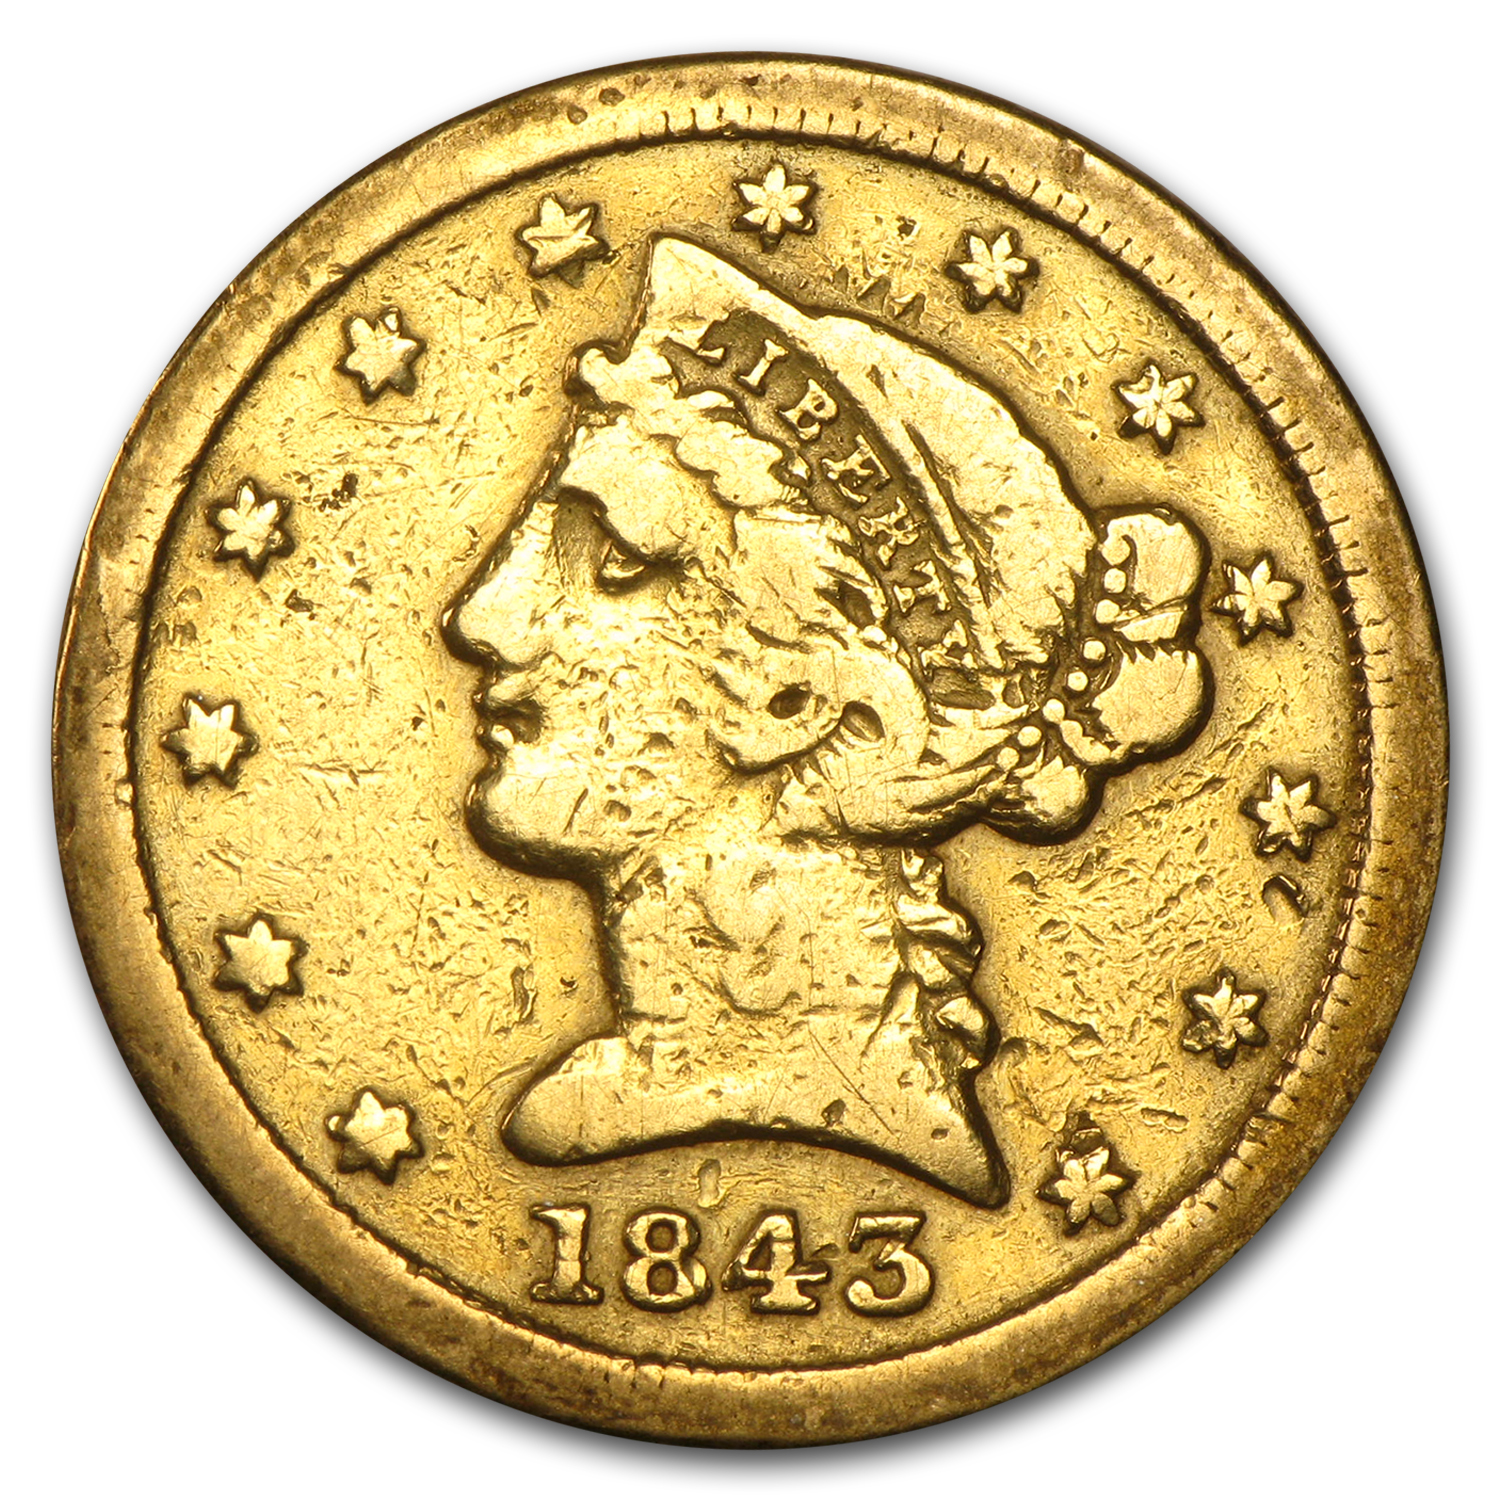 1843-C $5 Liberty Gold Half Eagle VG Details (Cleaned)